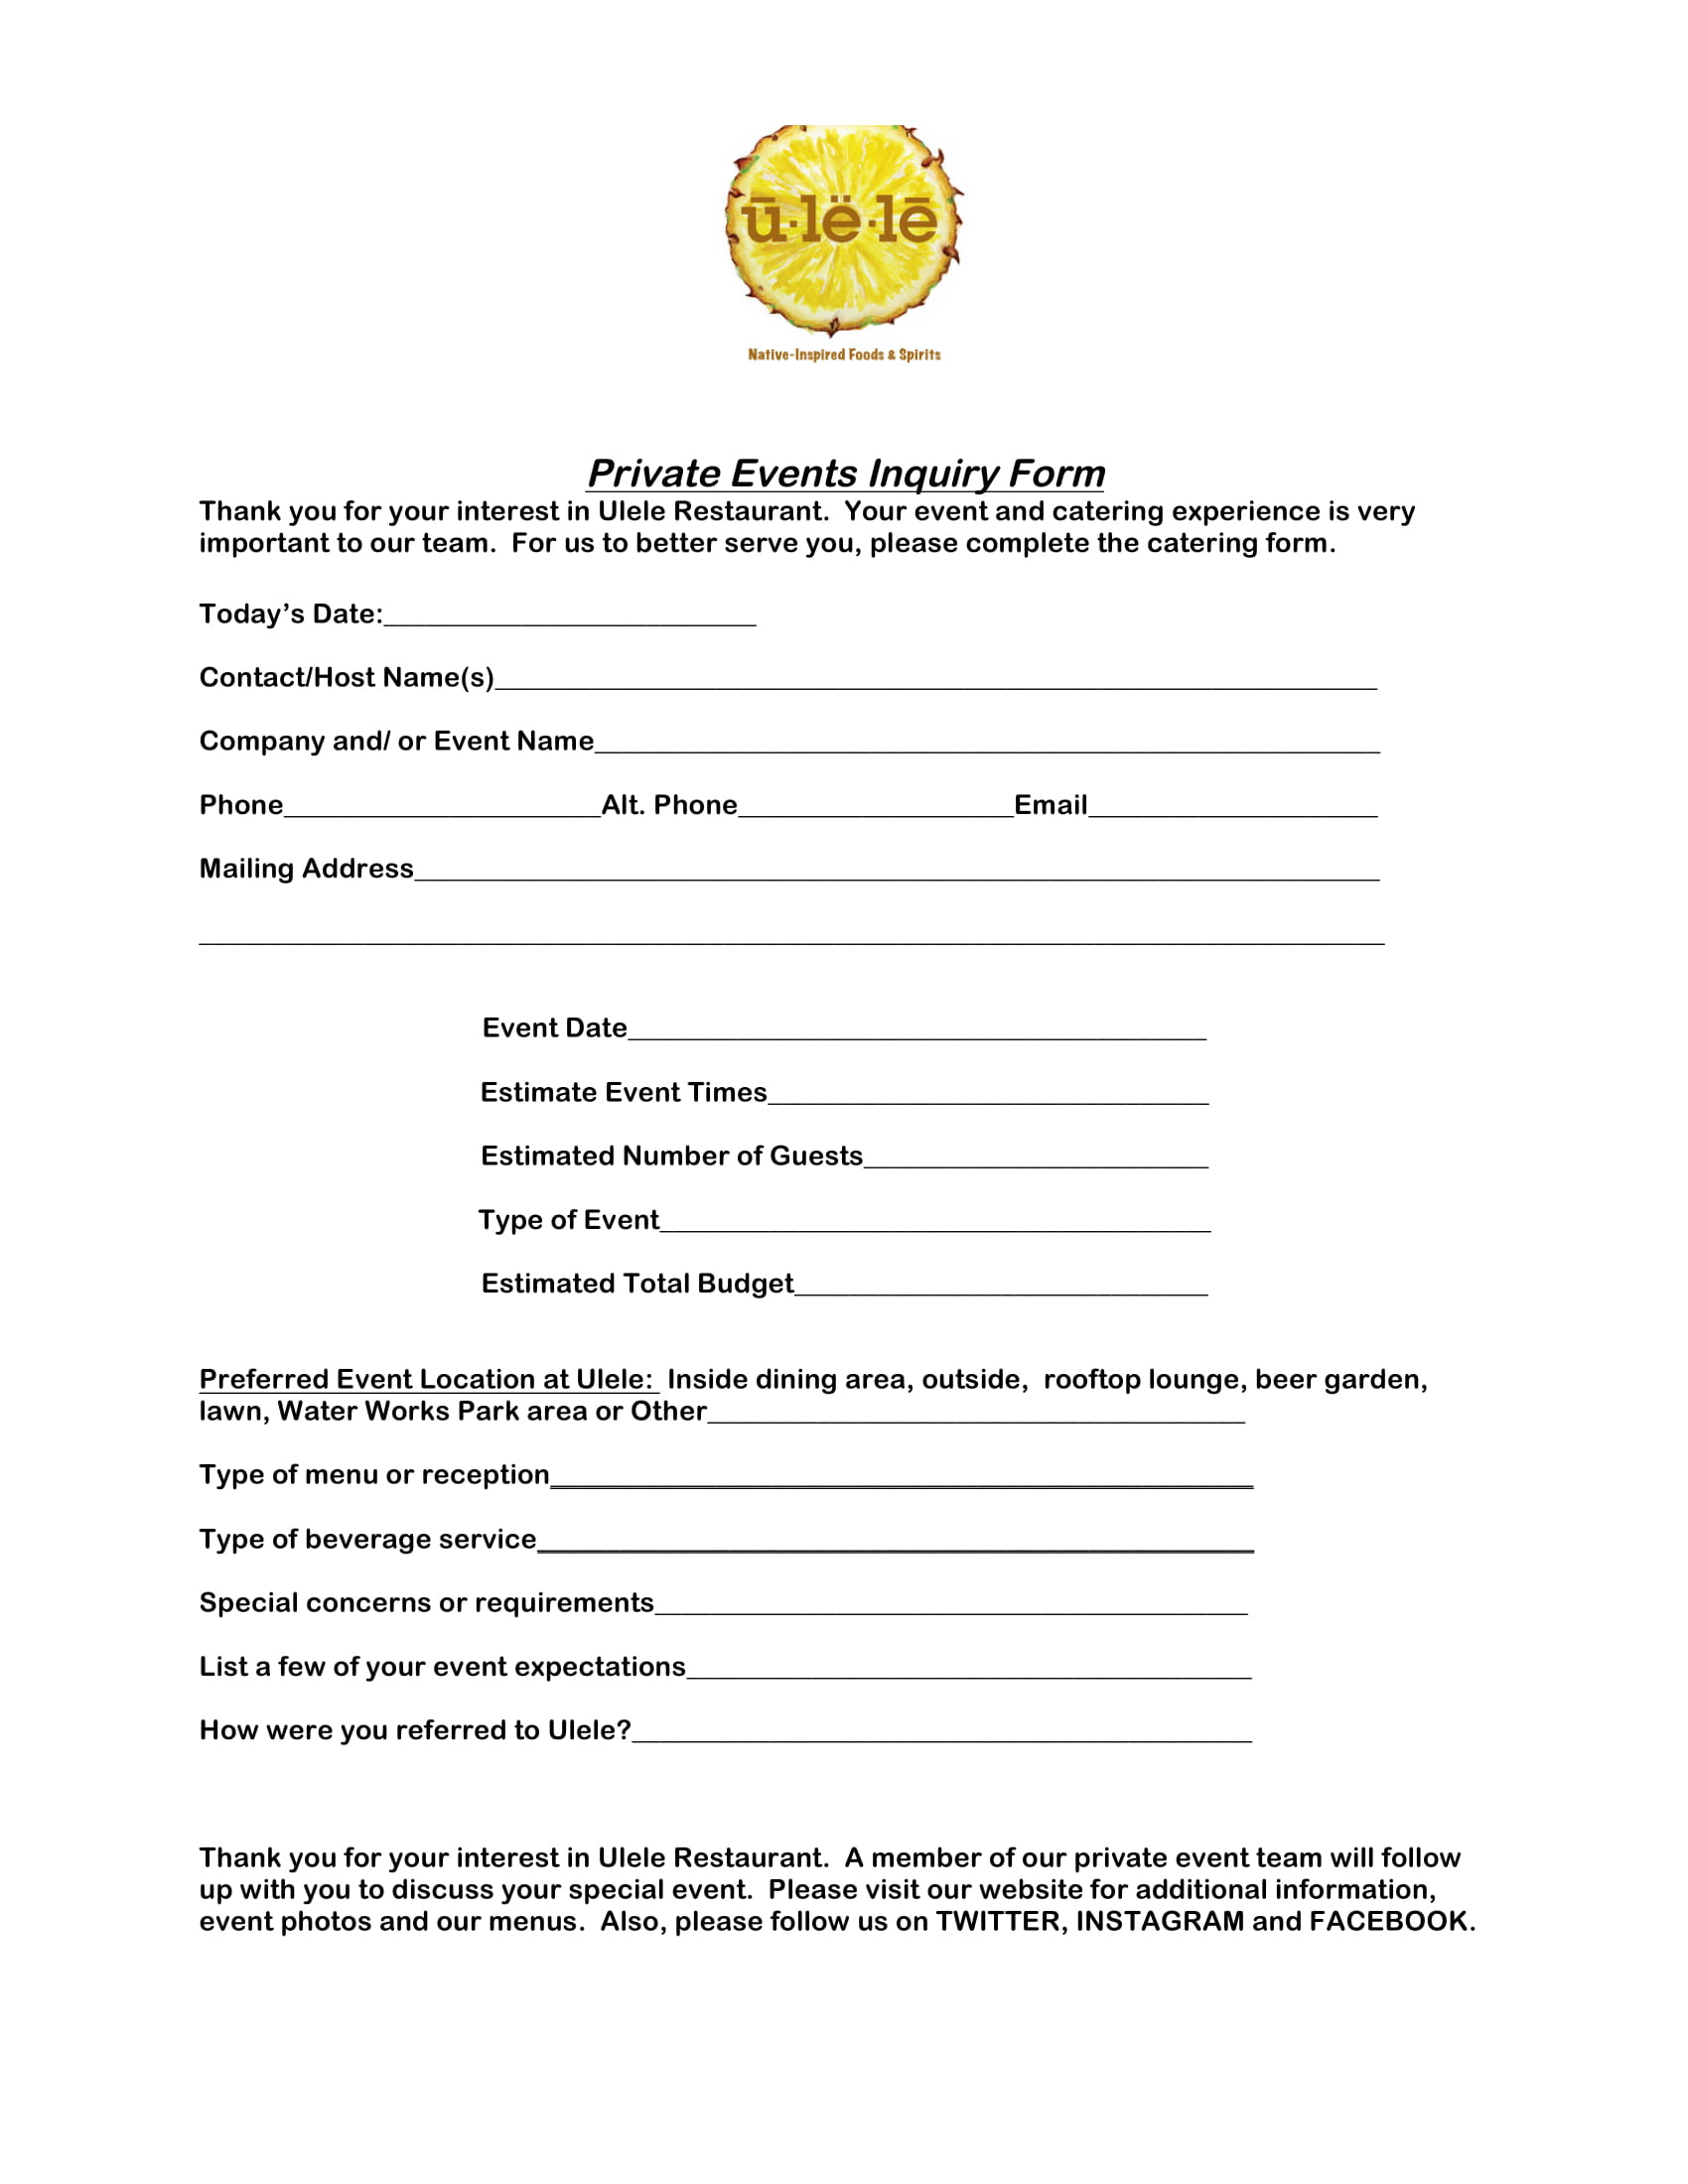 Enquiry Form Template from images.sampleforms.com